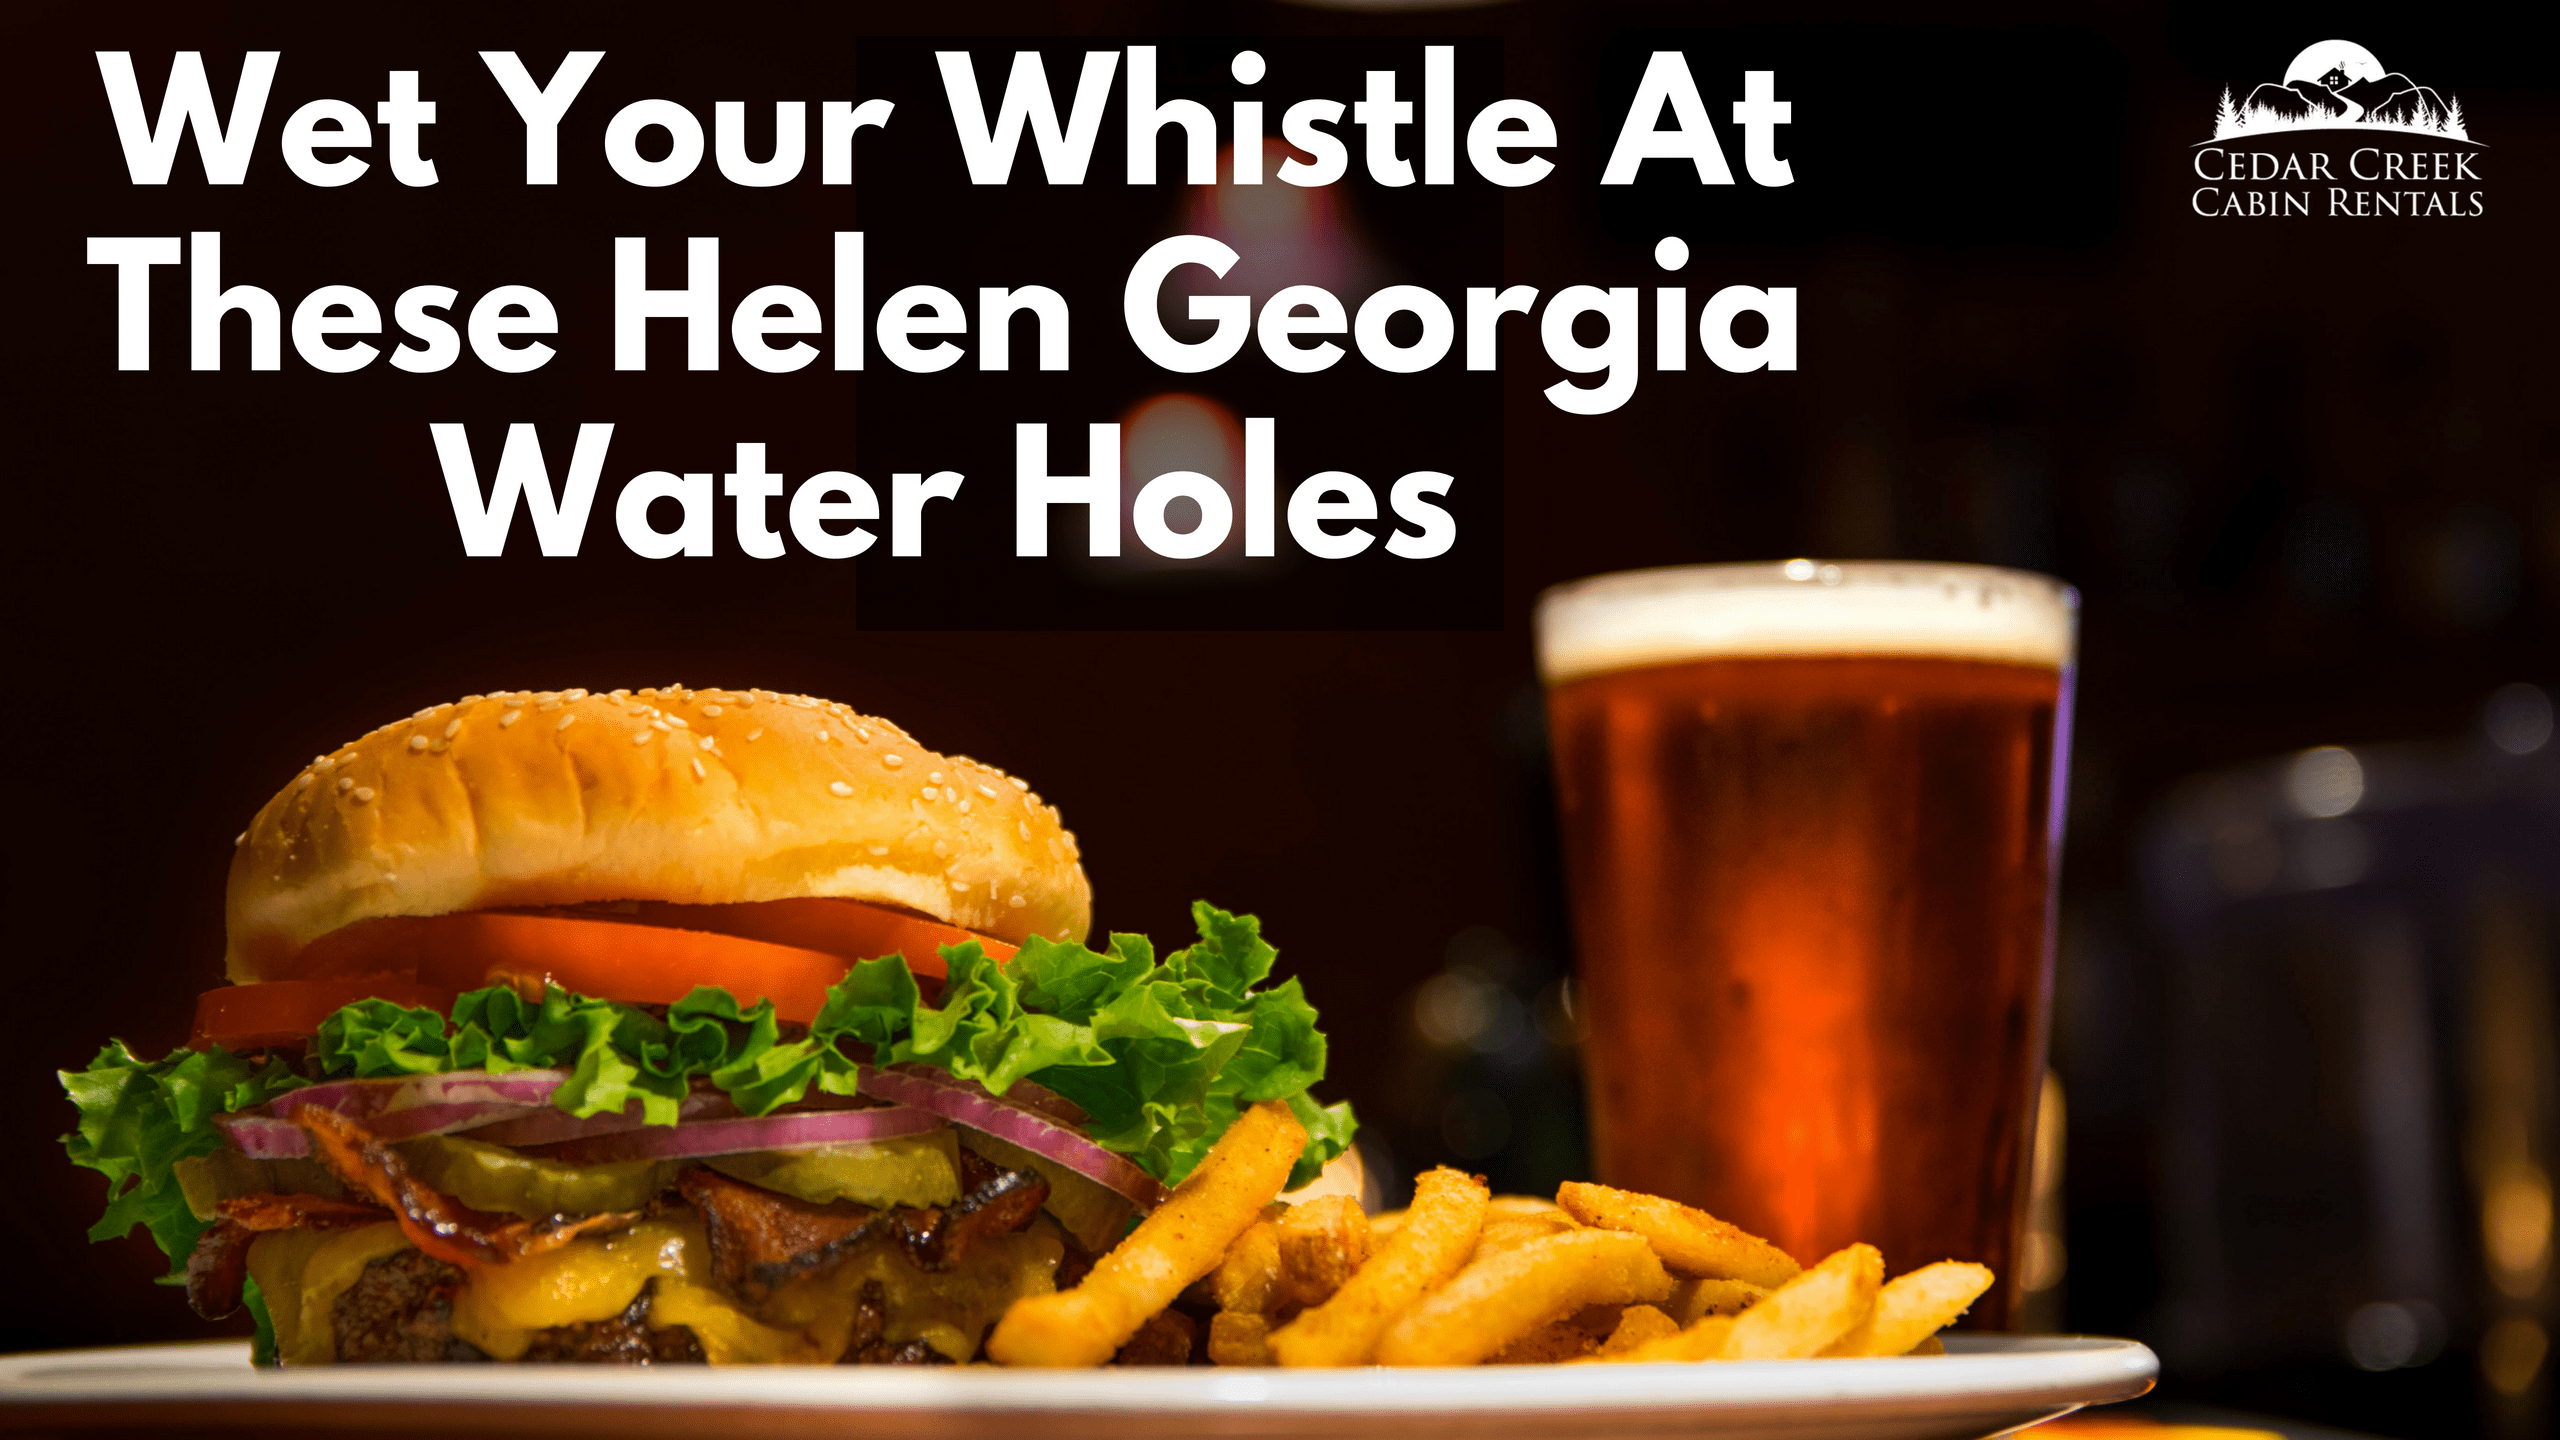 Wet-Your-Whistle-At-These-Helen-Georgia-Water-Holes-Blog-Banner